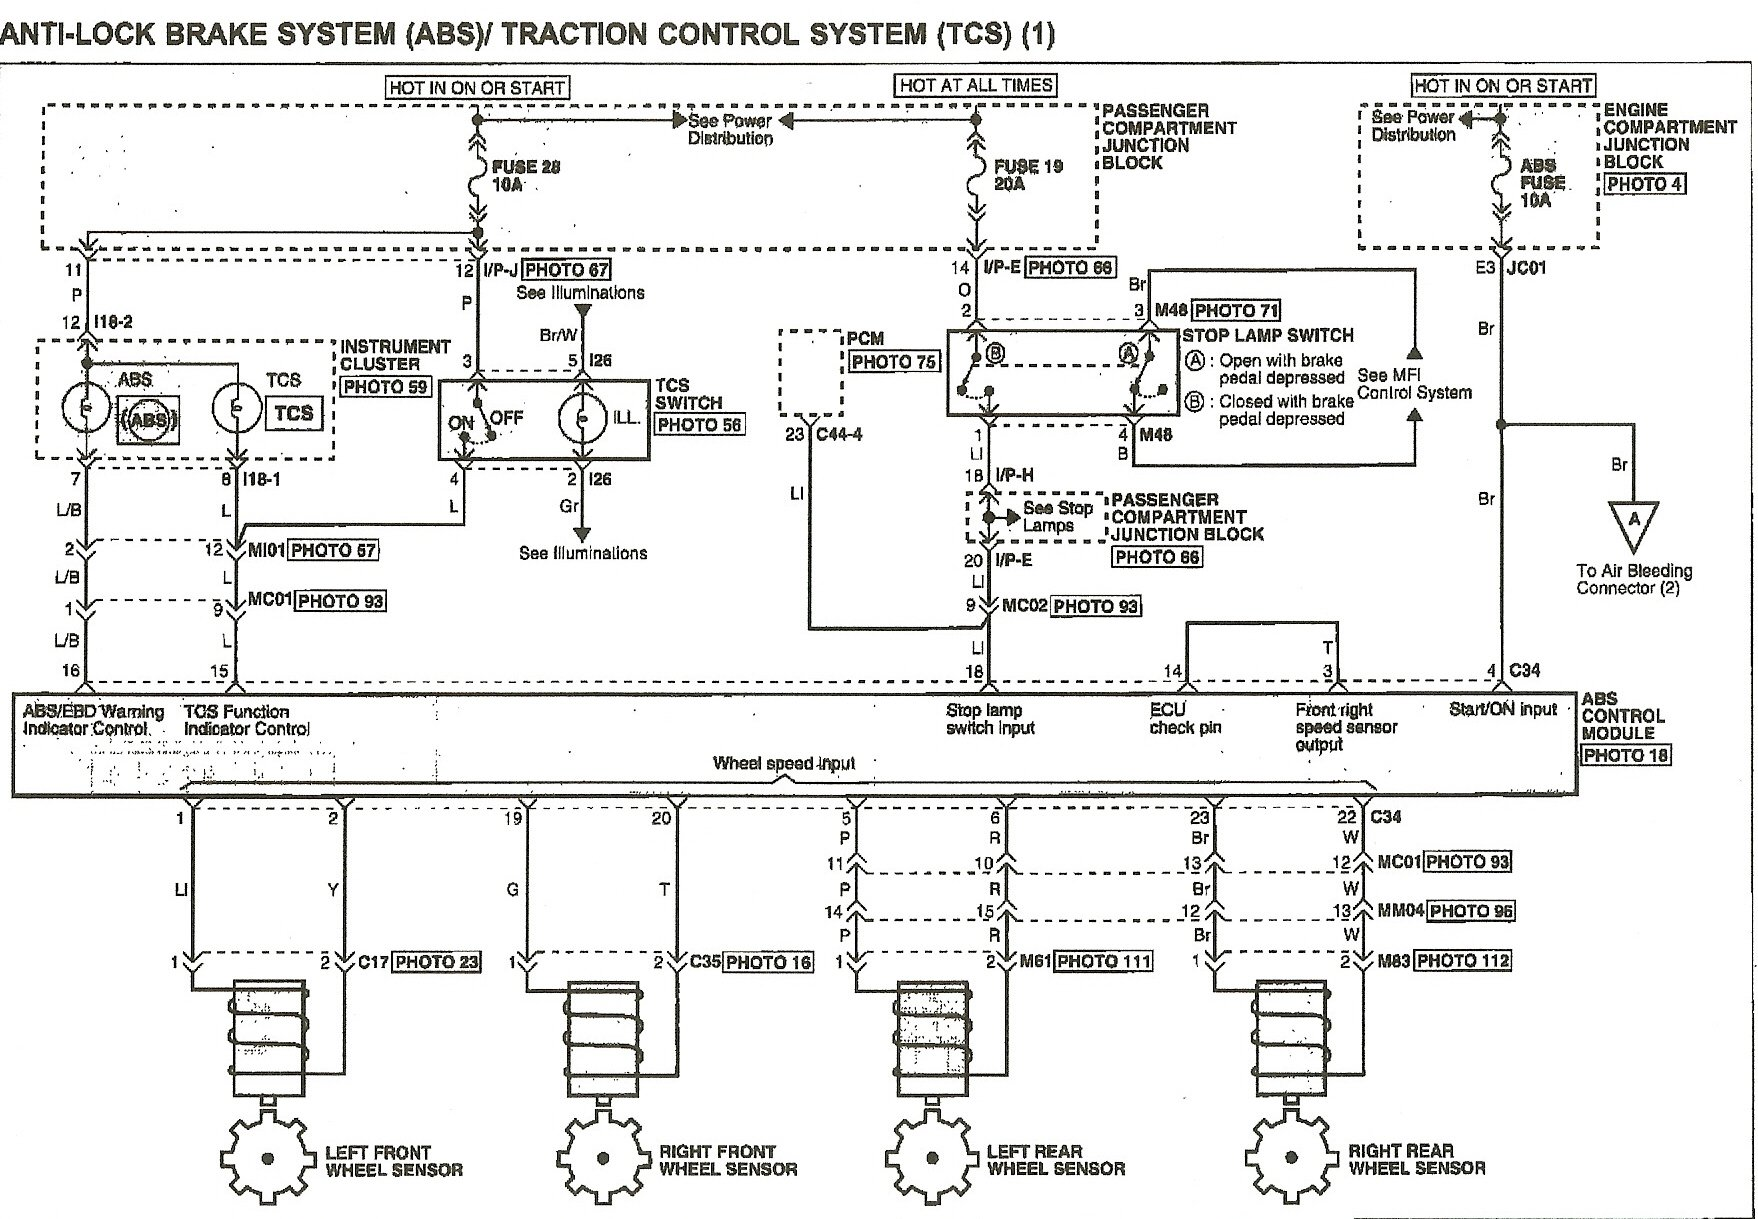 Hyundai Xg350 Wiring Diagram Free Picture Schematic Diagrams 2005 Tucson Wire I Have A With Traction Control Problems Stereo Sonata